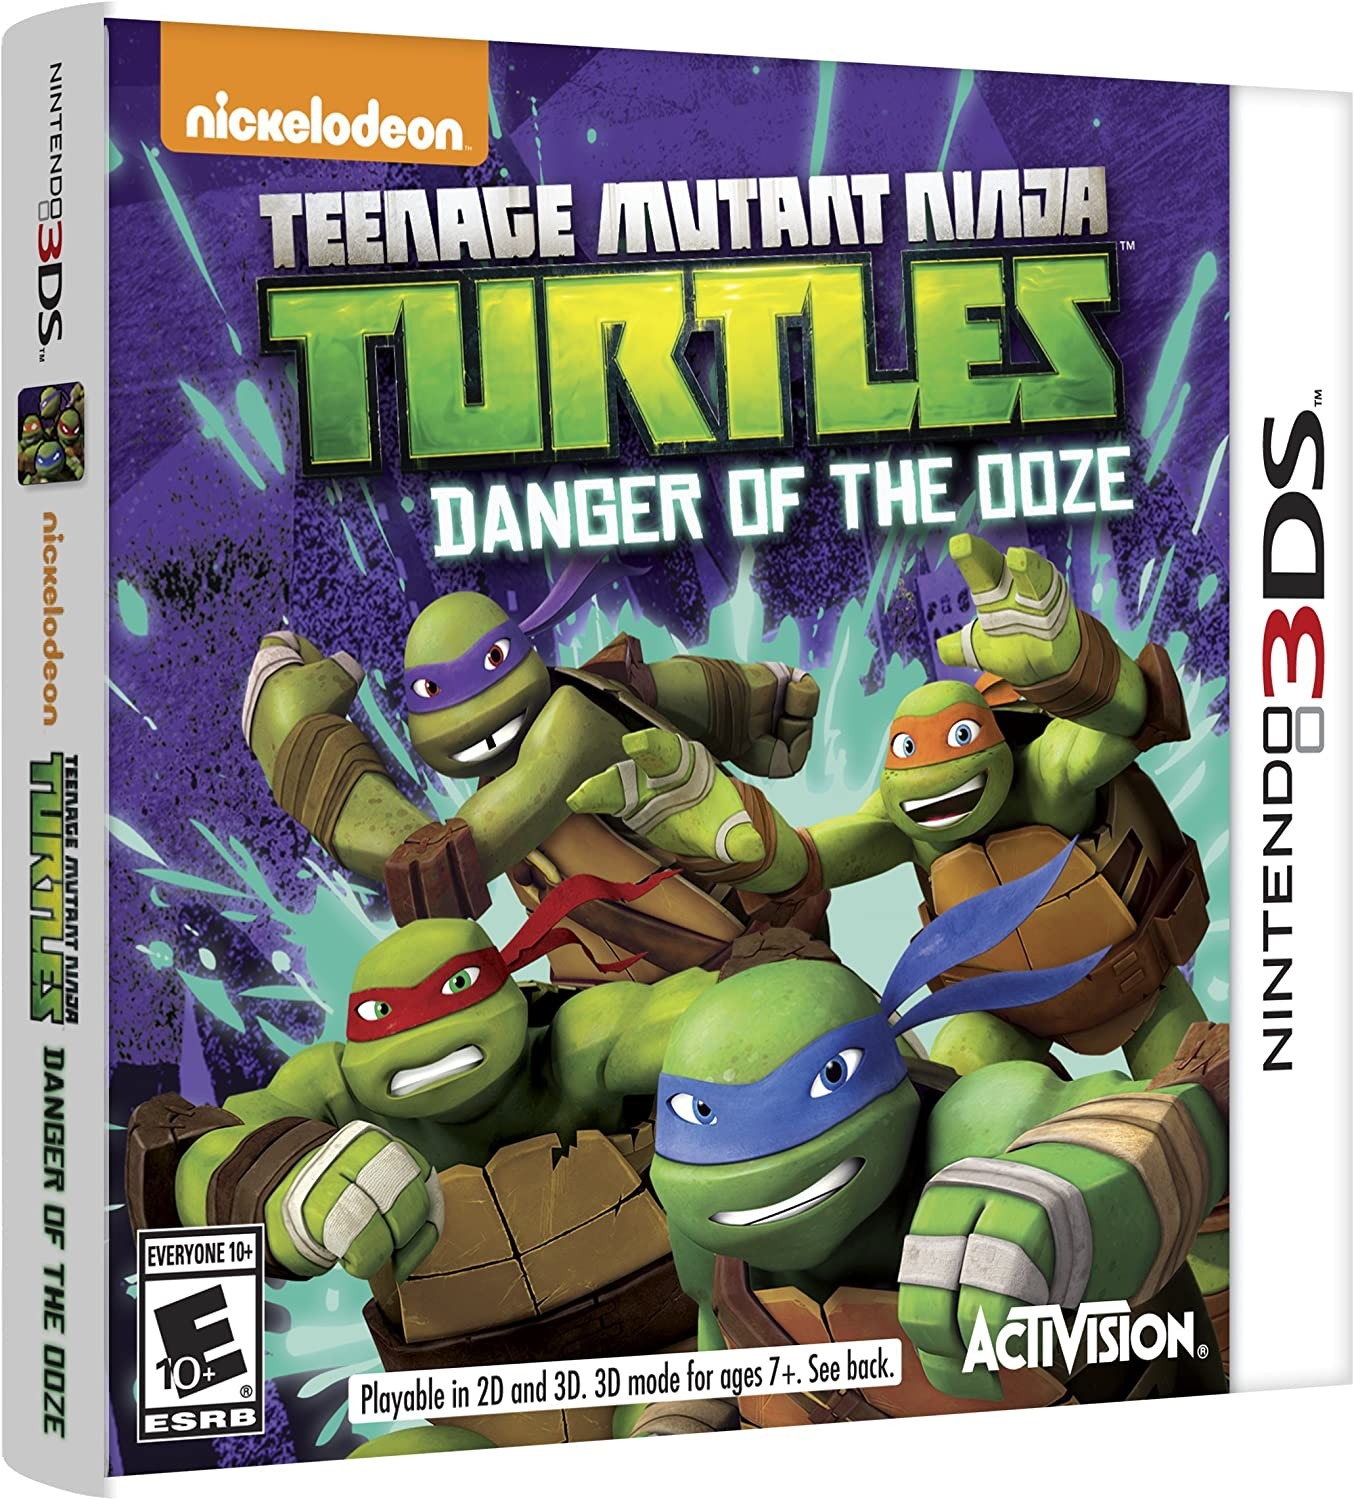 Amazon.com: Teenage Mutant Ninja Turtles: Danger of the OOZE ...